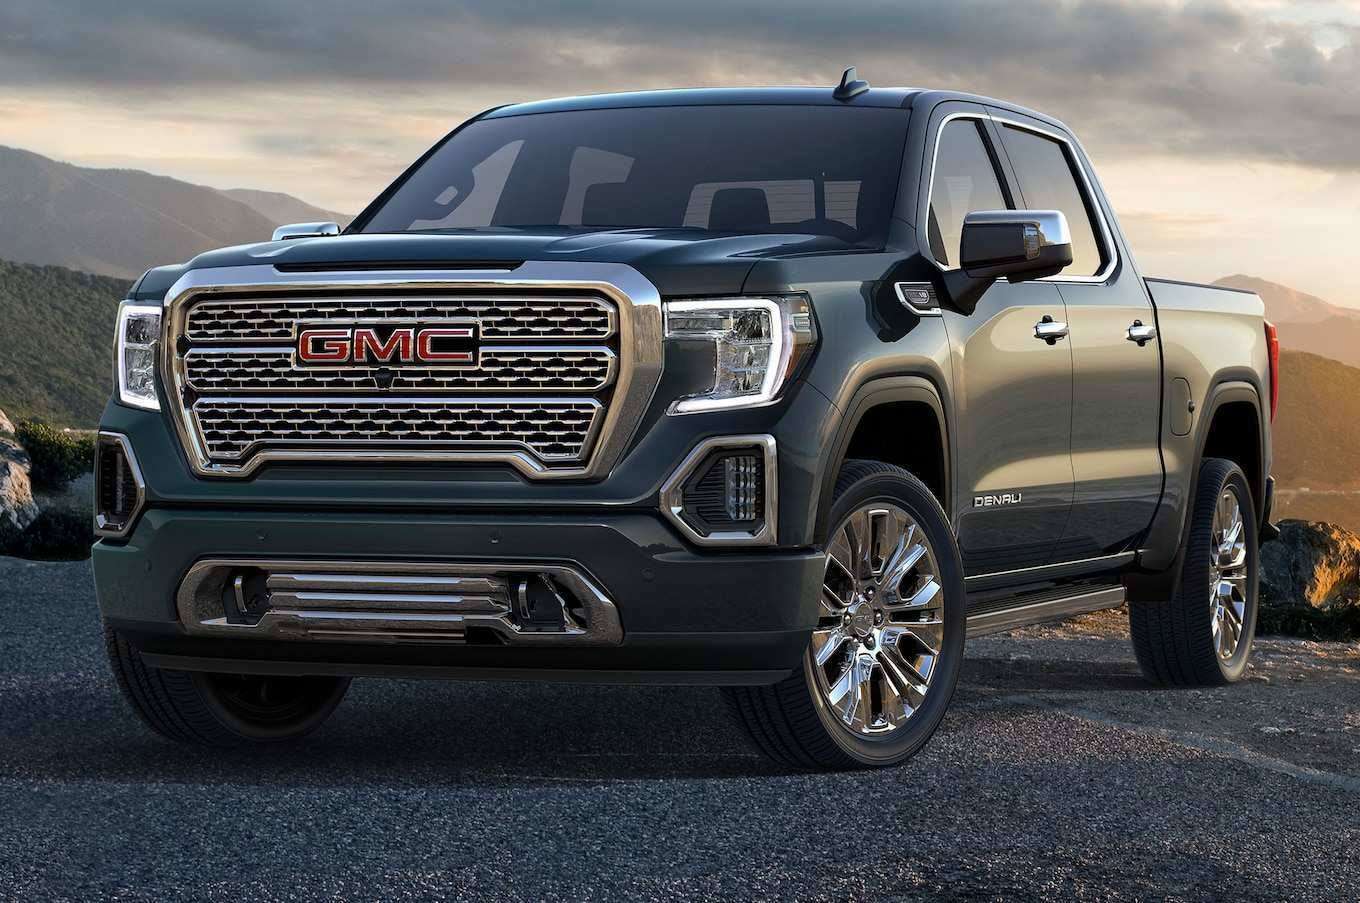 59 The 2019 GMC Sierra Hd Images